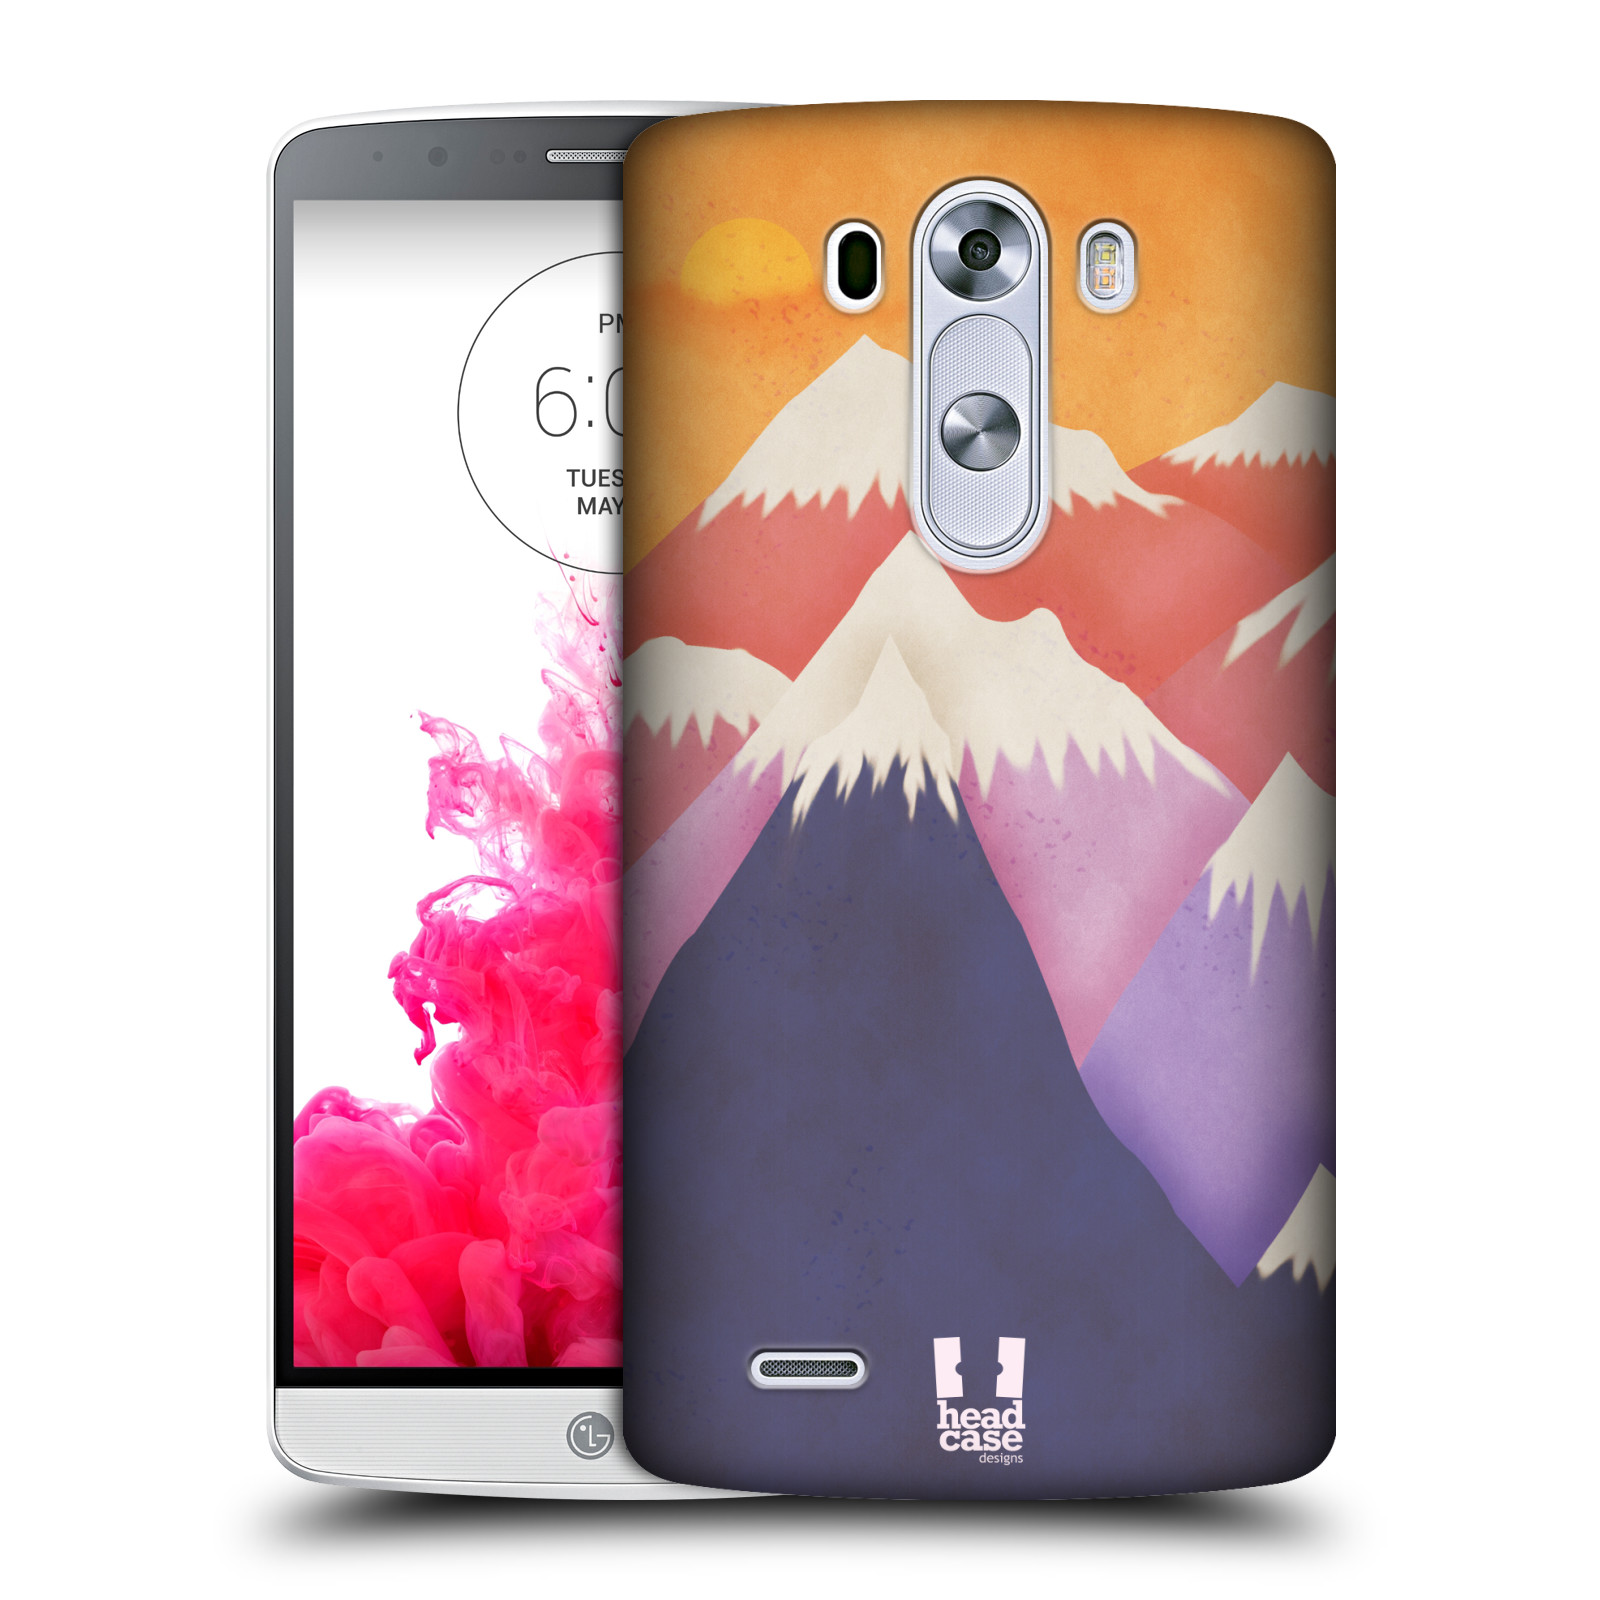 HEAD CASE DESIGNS COLOURFUL MOUNTAINS HARD BACK CASE FOR LG PHONES 1